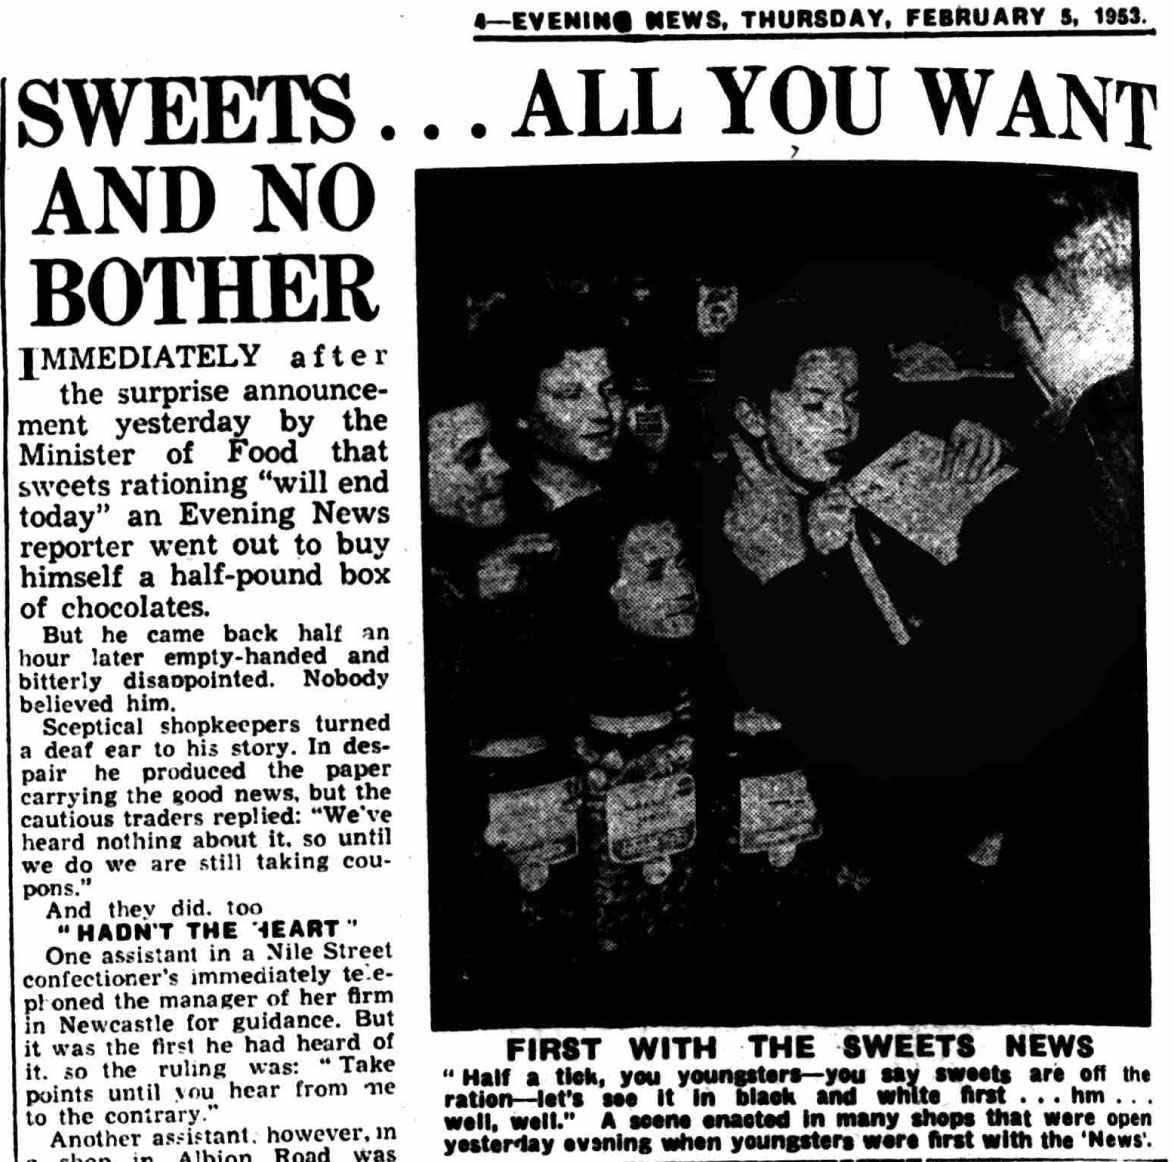 Sweets. All you want, and no bother. Shields Daily News. Thursday, 5 February 1953. Page 4, col. 4.